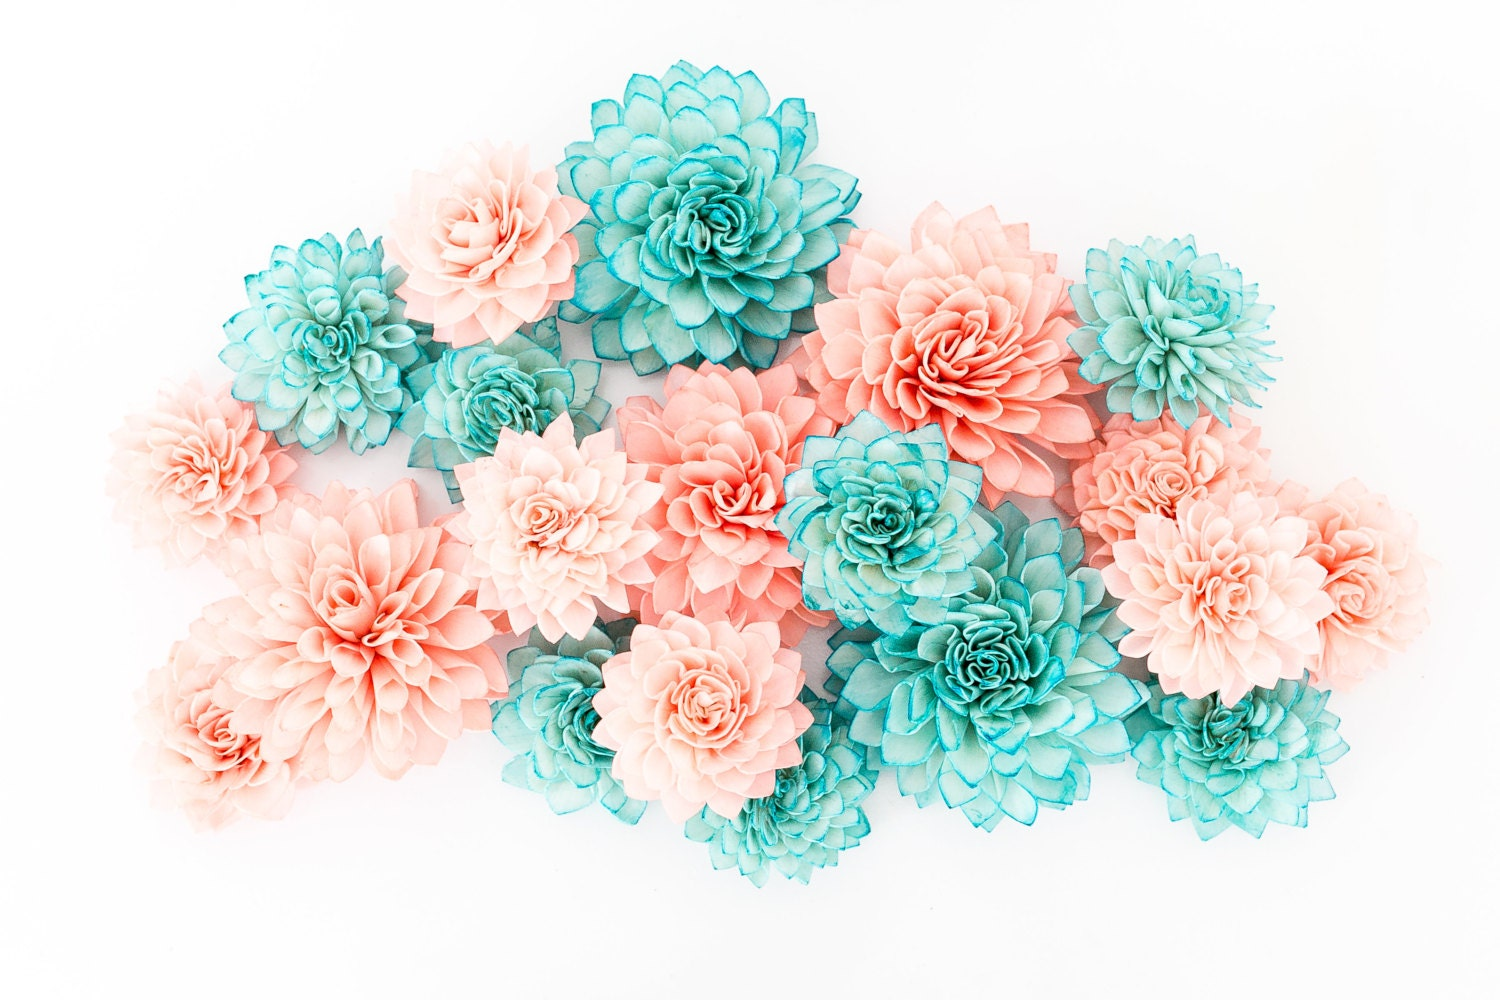 15 Coral and Teal Mixed Wooden Flowers Wedding Decorations